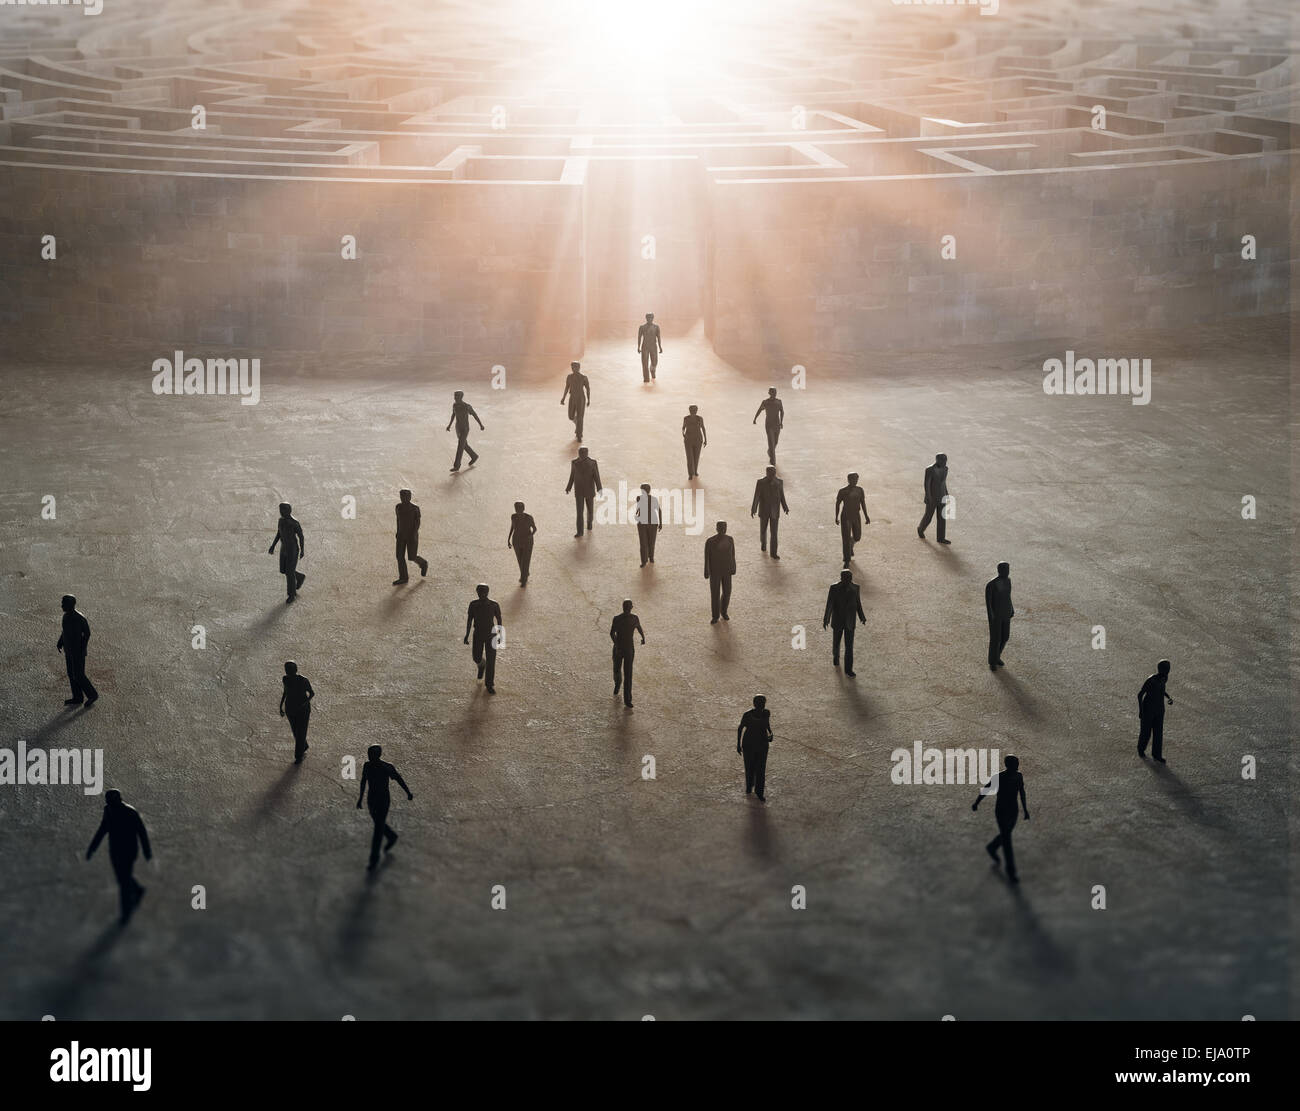 Tiny people walking out of a mysterious maze - Stock Image